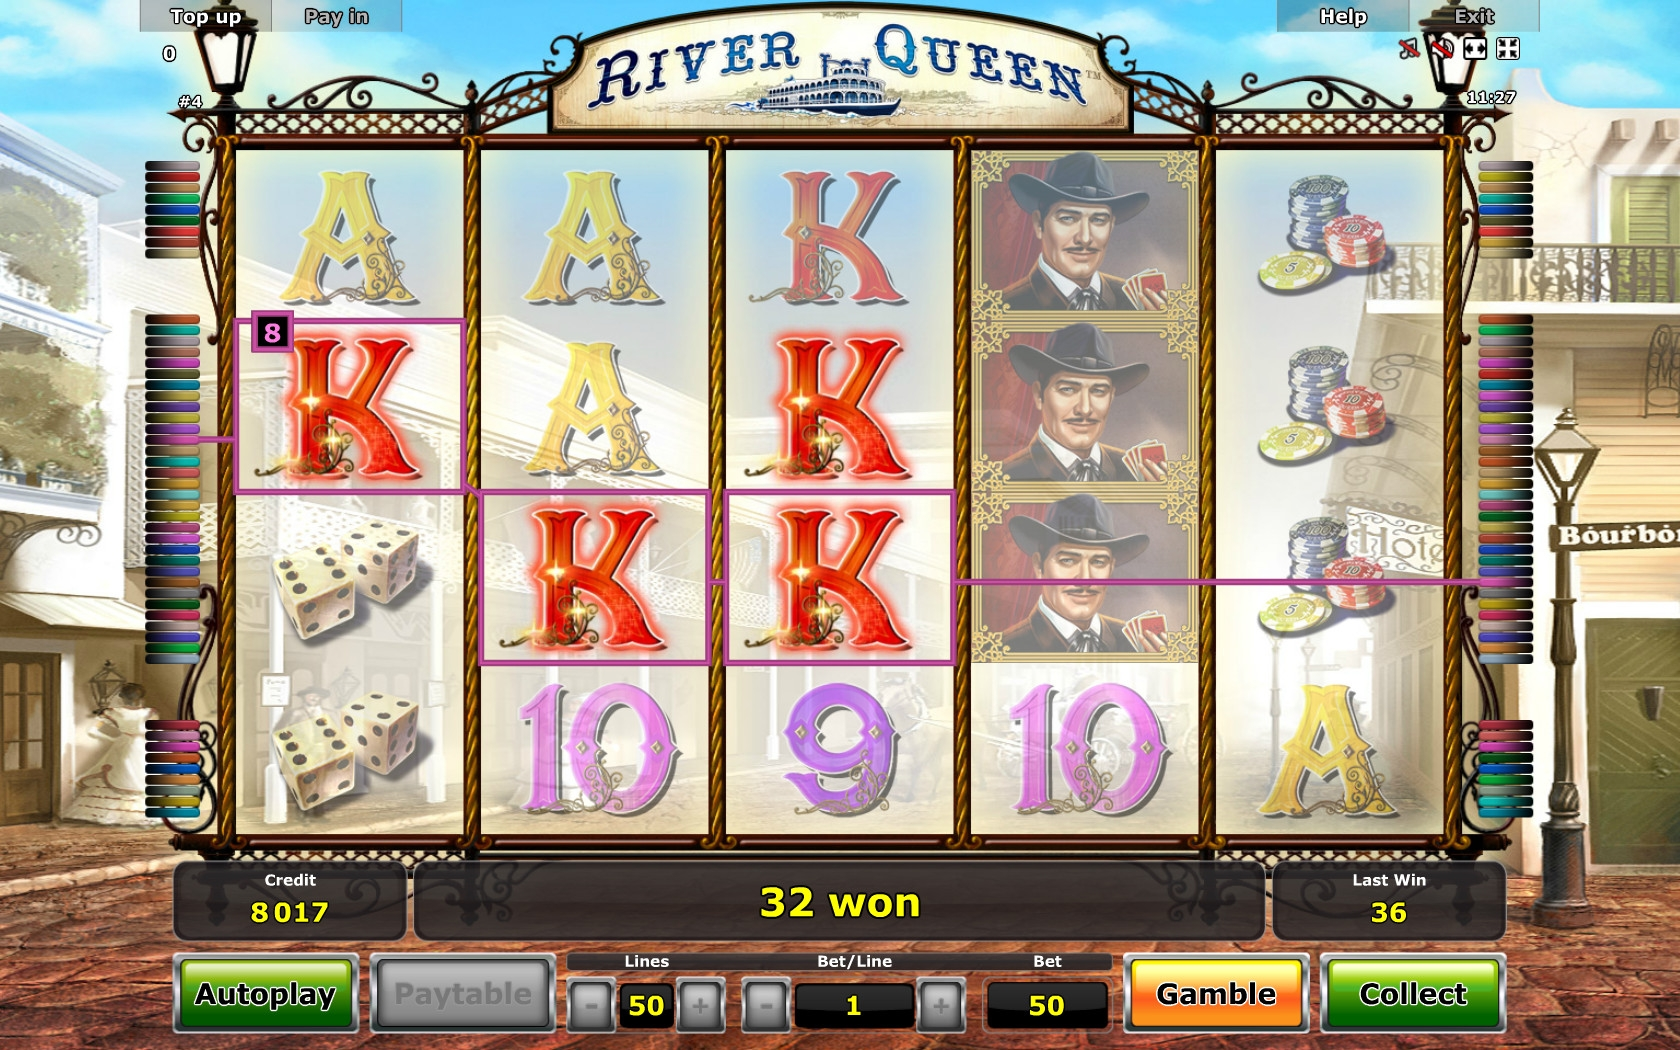 slots casino free online river queen